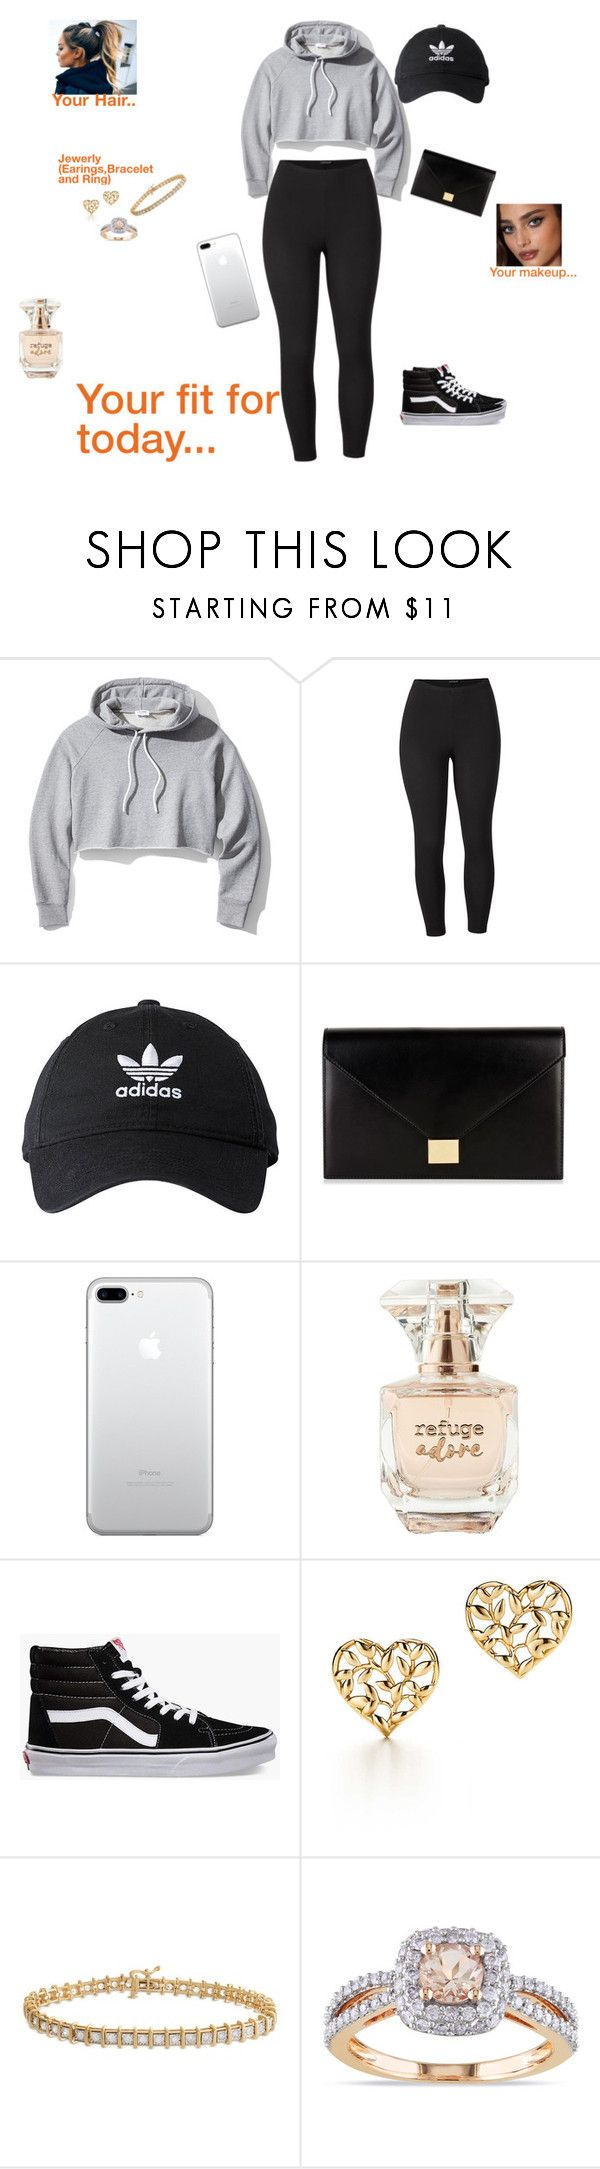 """Who says because you play sports you can't look good."" by boujee-baby-hannah03 ❤ liked on Polyvore featuring beauty, Frame, Venus, adidas, Victoria Beckham, Refuge, Vans, Paloma Picasso, Miadora and ComfySports"